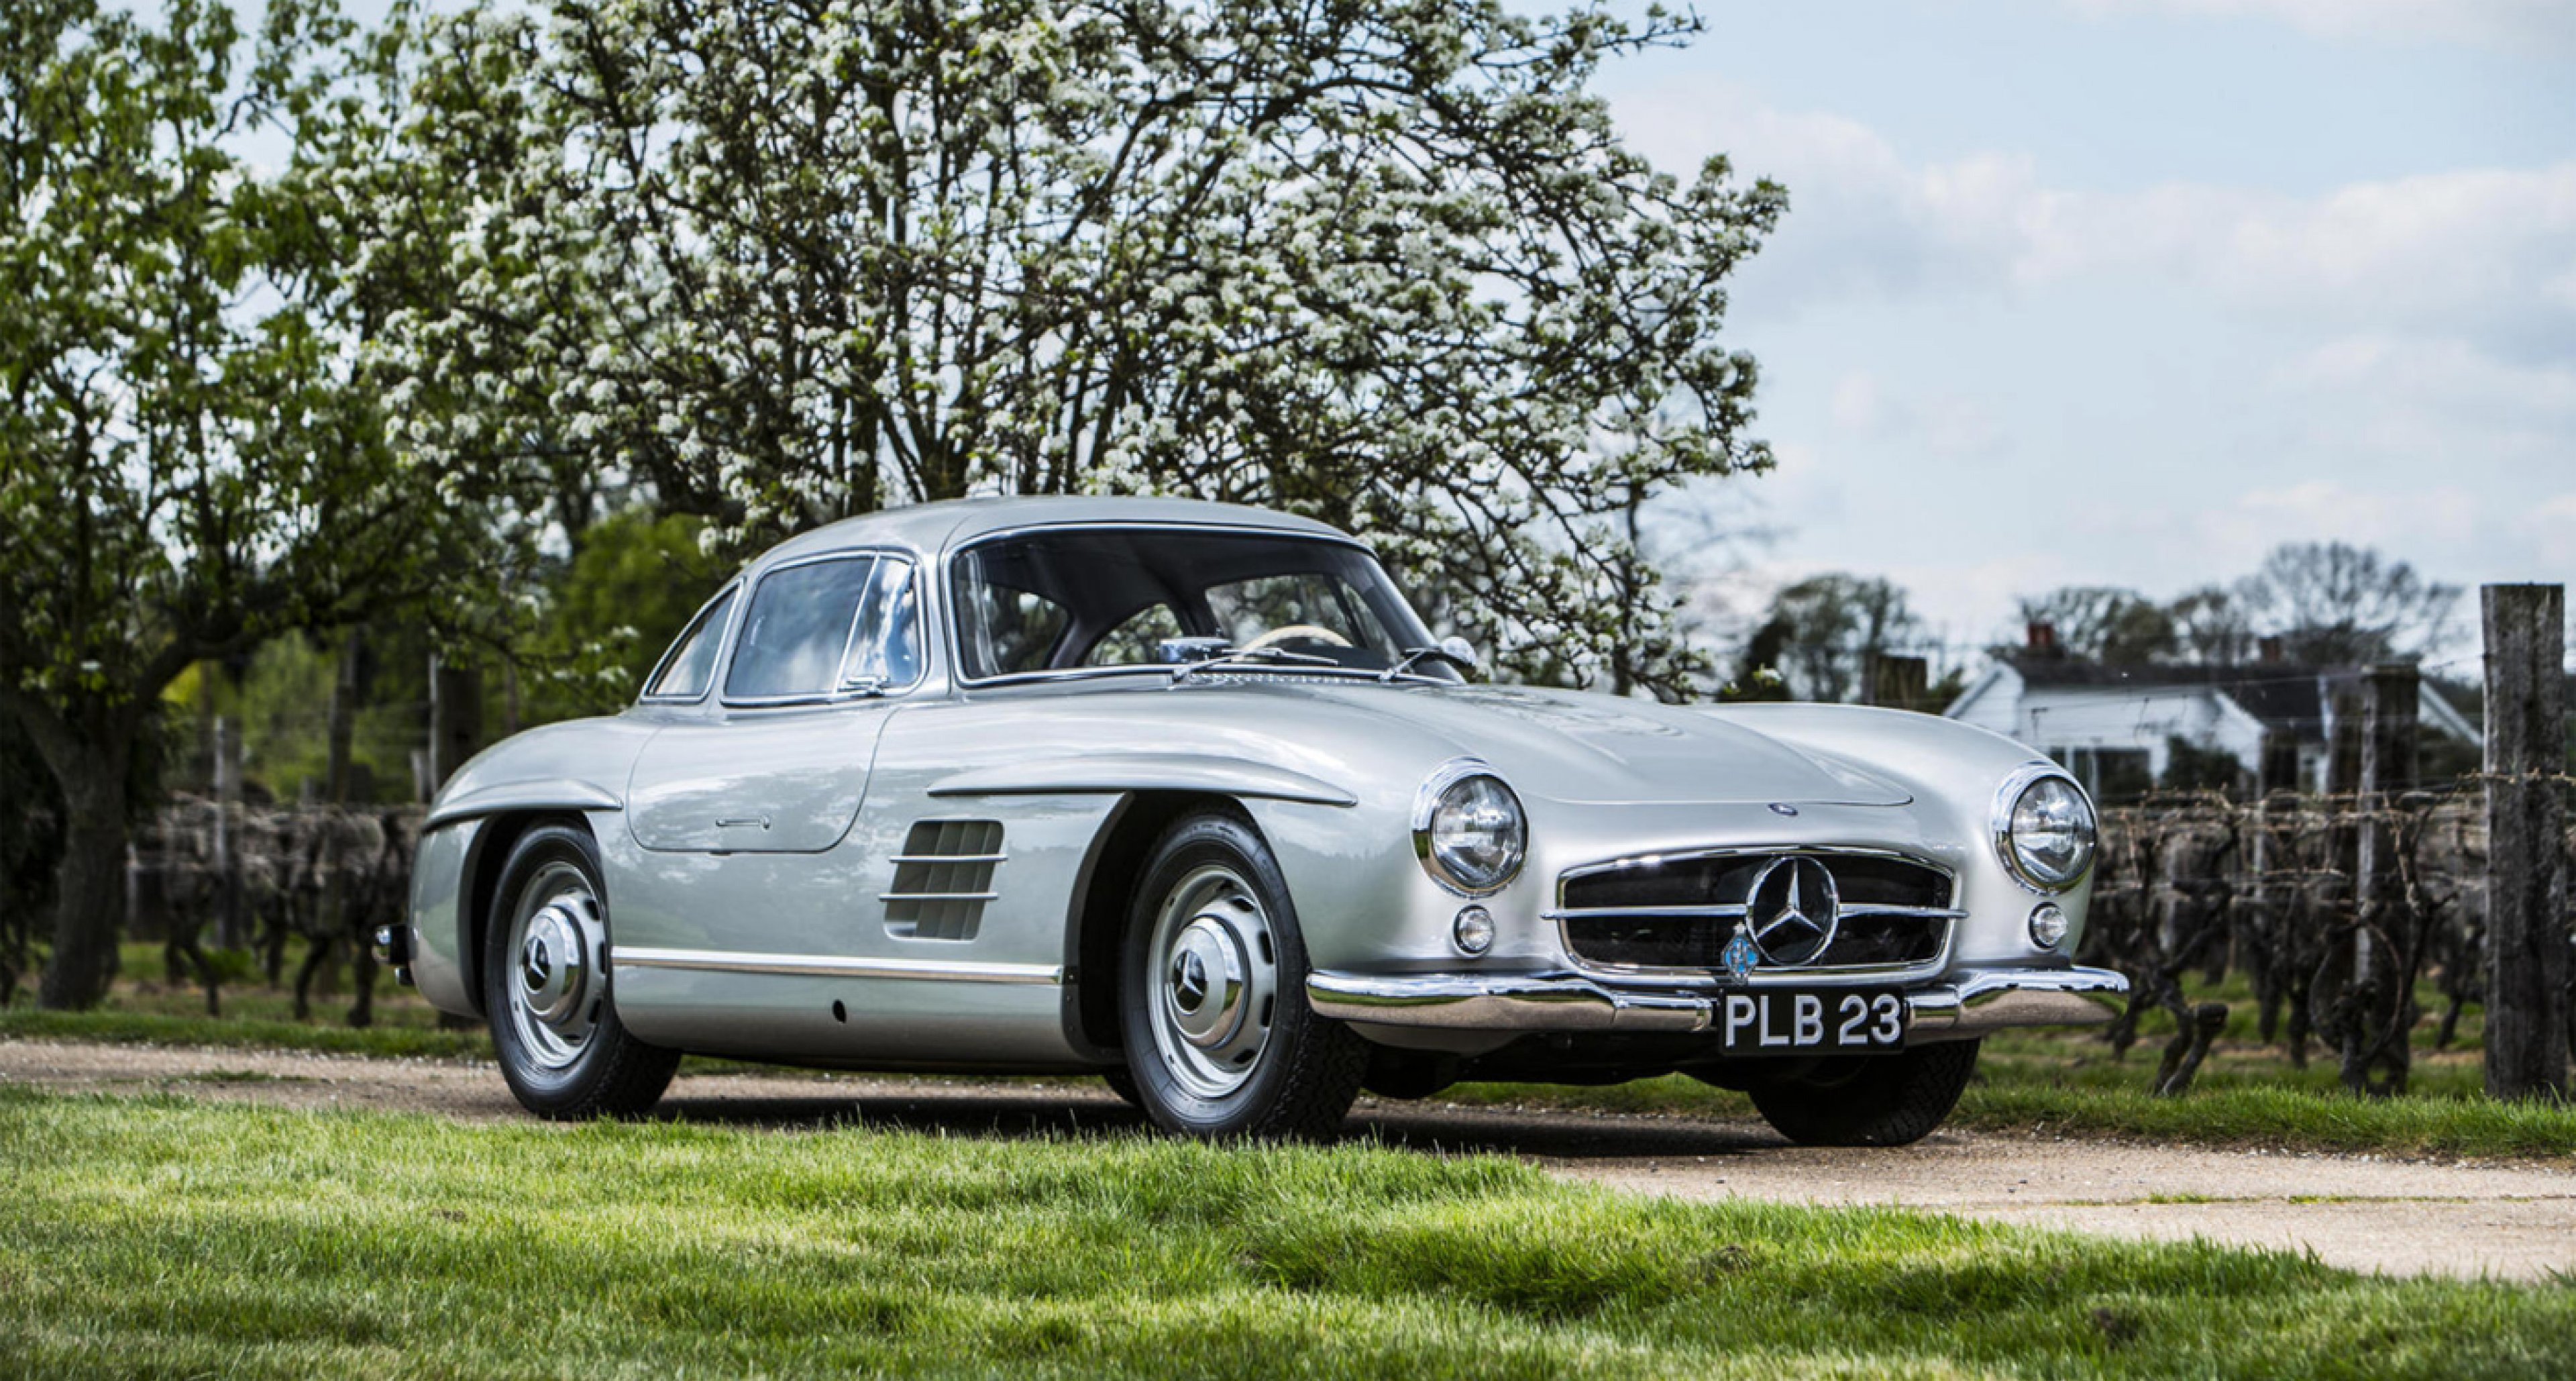 Lot 26: 1954 Mercedes-Benz 300SL Coupé 'Stirling Moss/Denis Jenkinson 1955 Mille Miglia Reconnaissance 'Gullwing' / 'The Ex-Paris Salon, London Motor Show, 'The Autocar' road test'